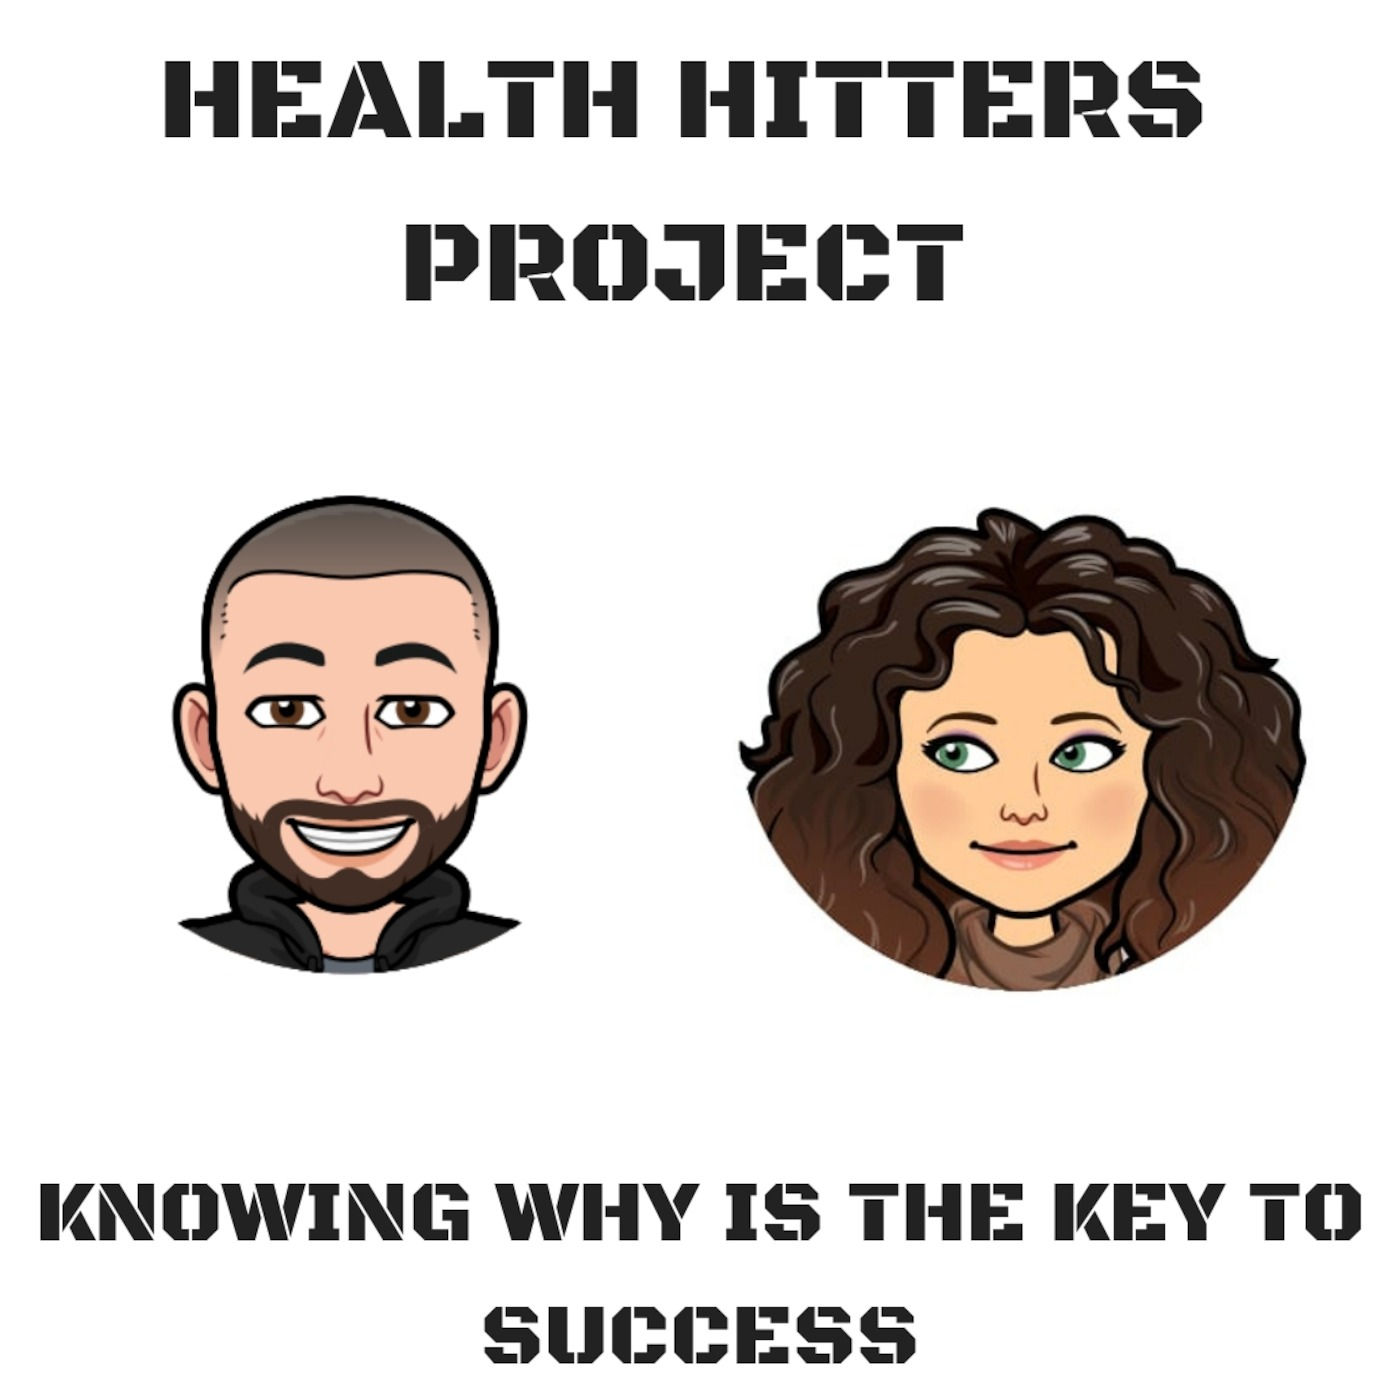 Health Hitters Project | Q&A Episode 2 - Short Or Long Term Approach